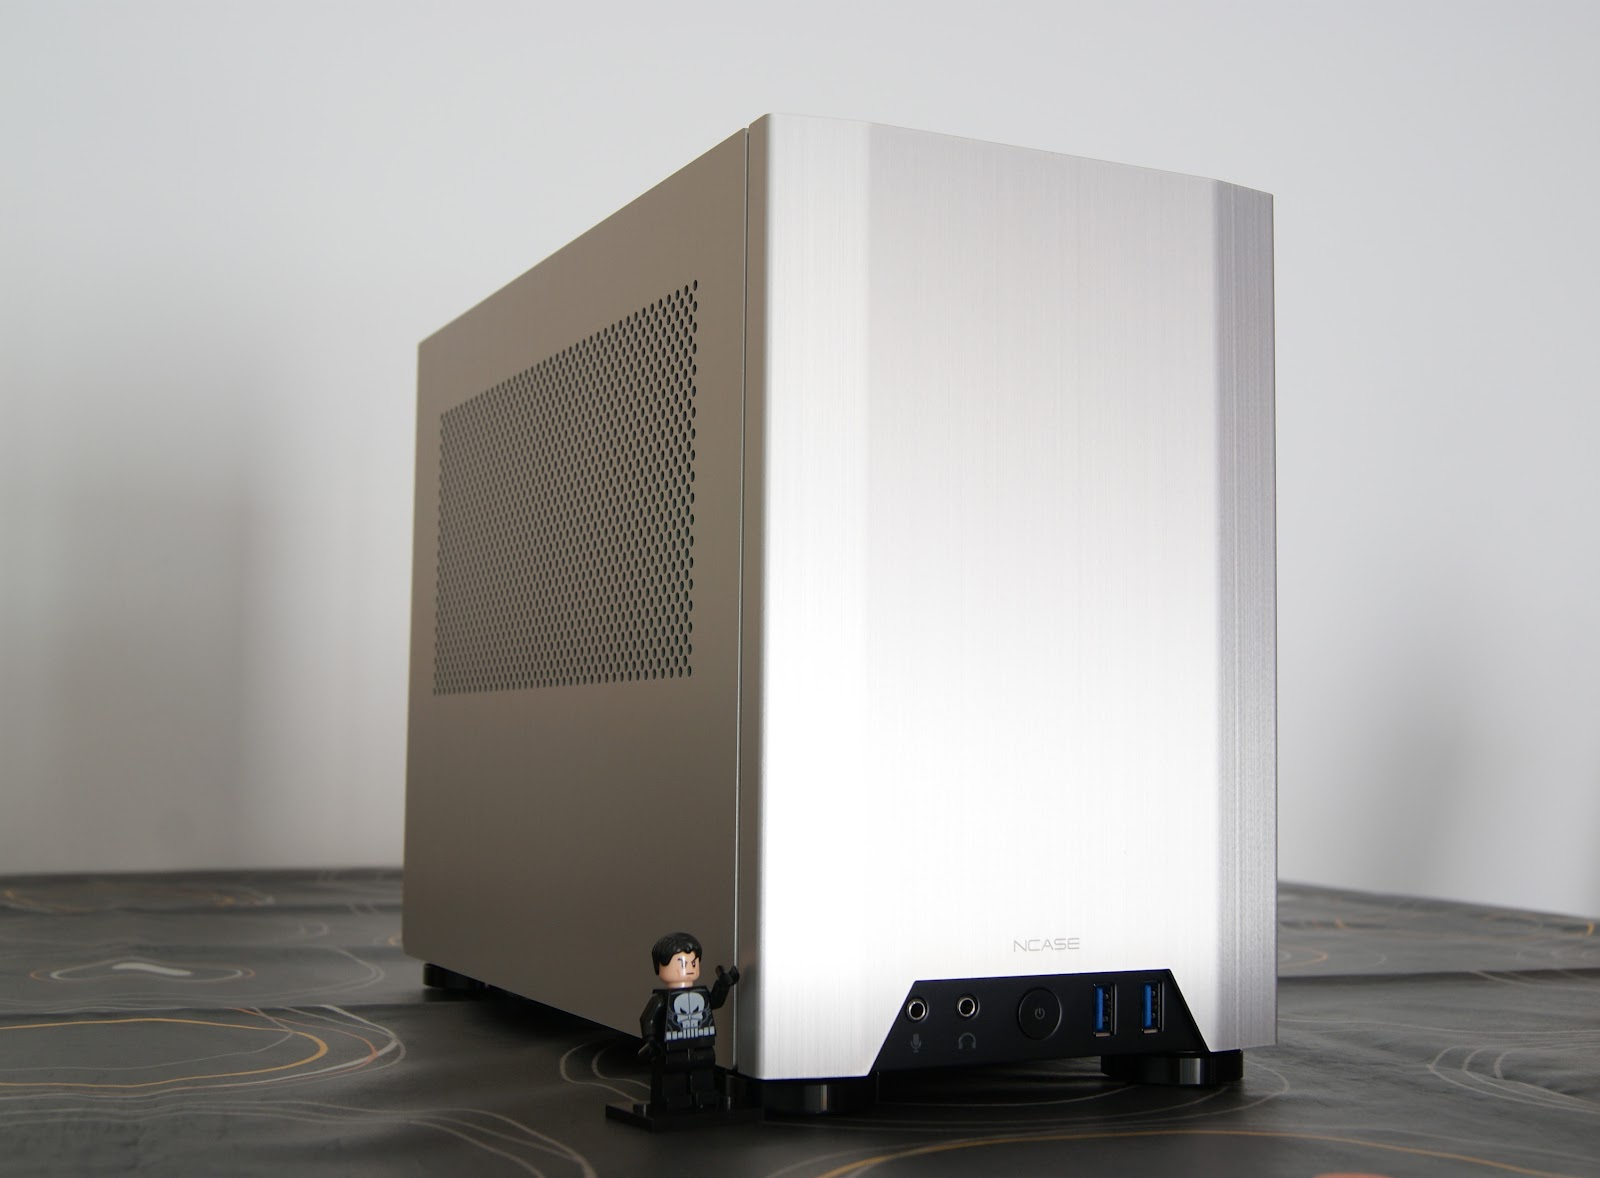 NCASE M1 - Minimax 3 by dPunisher